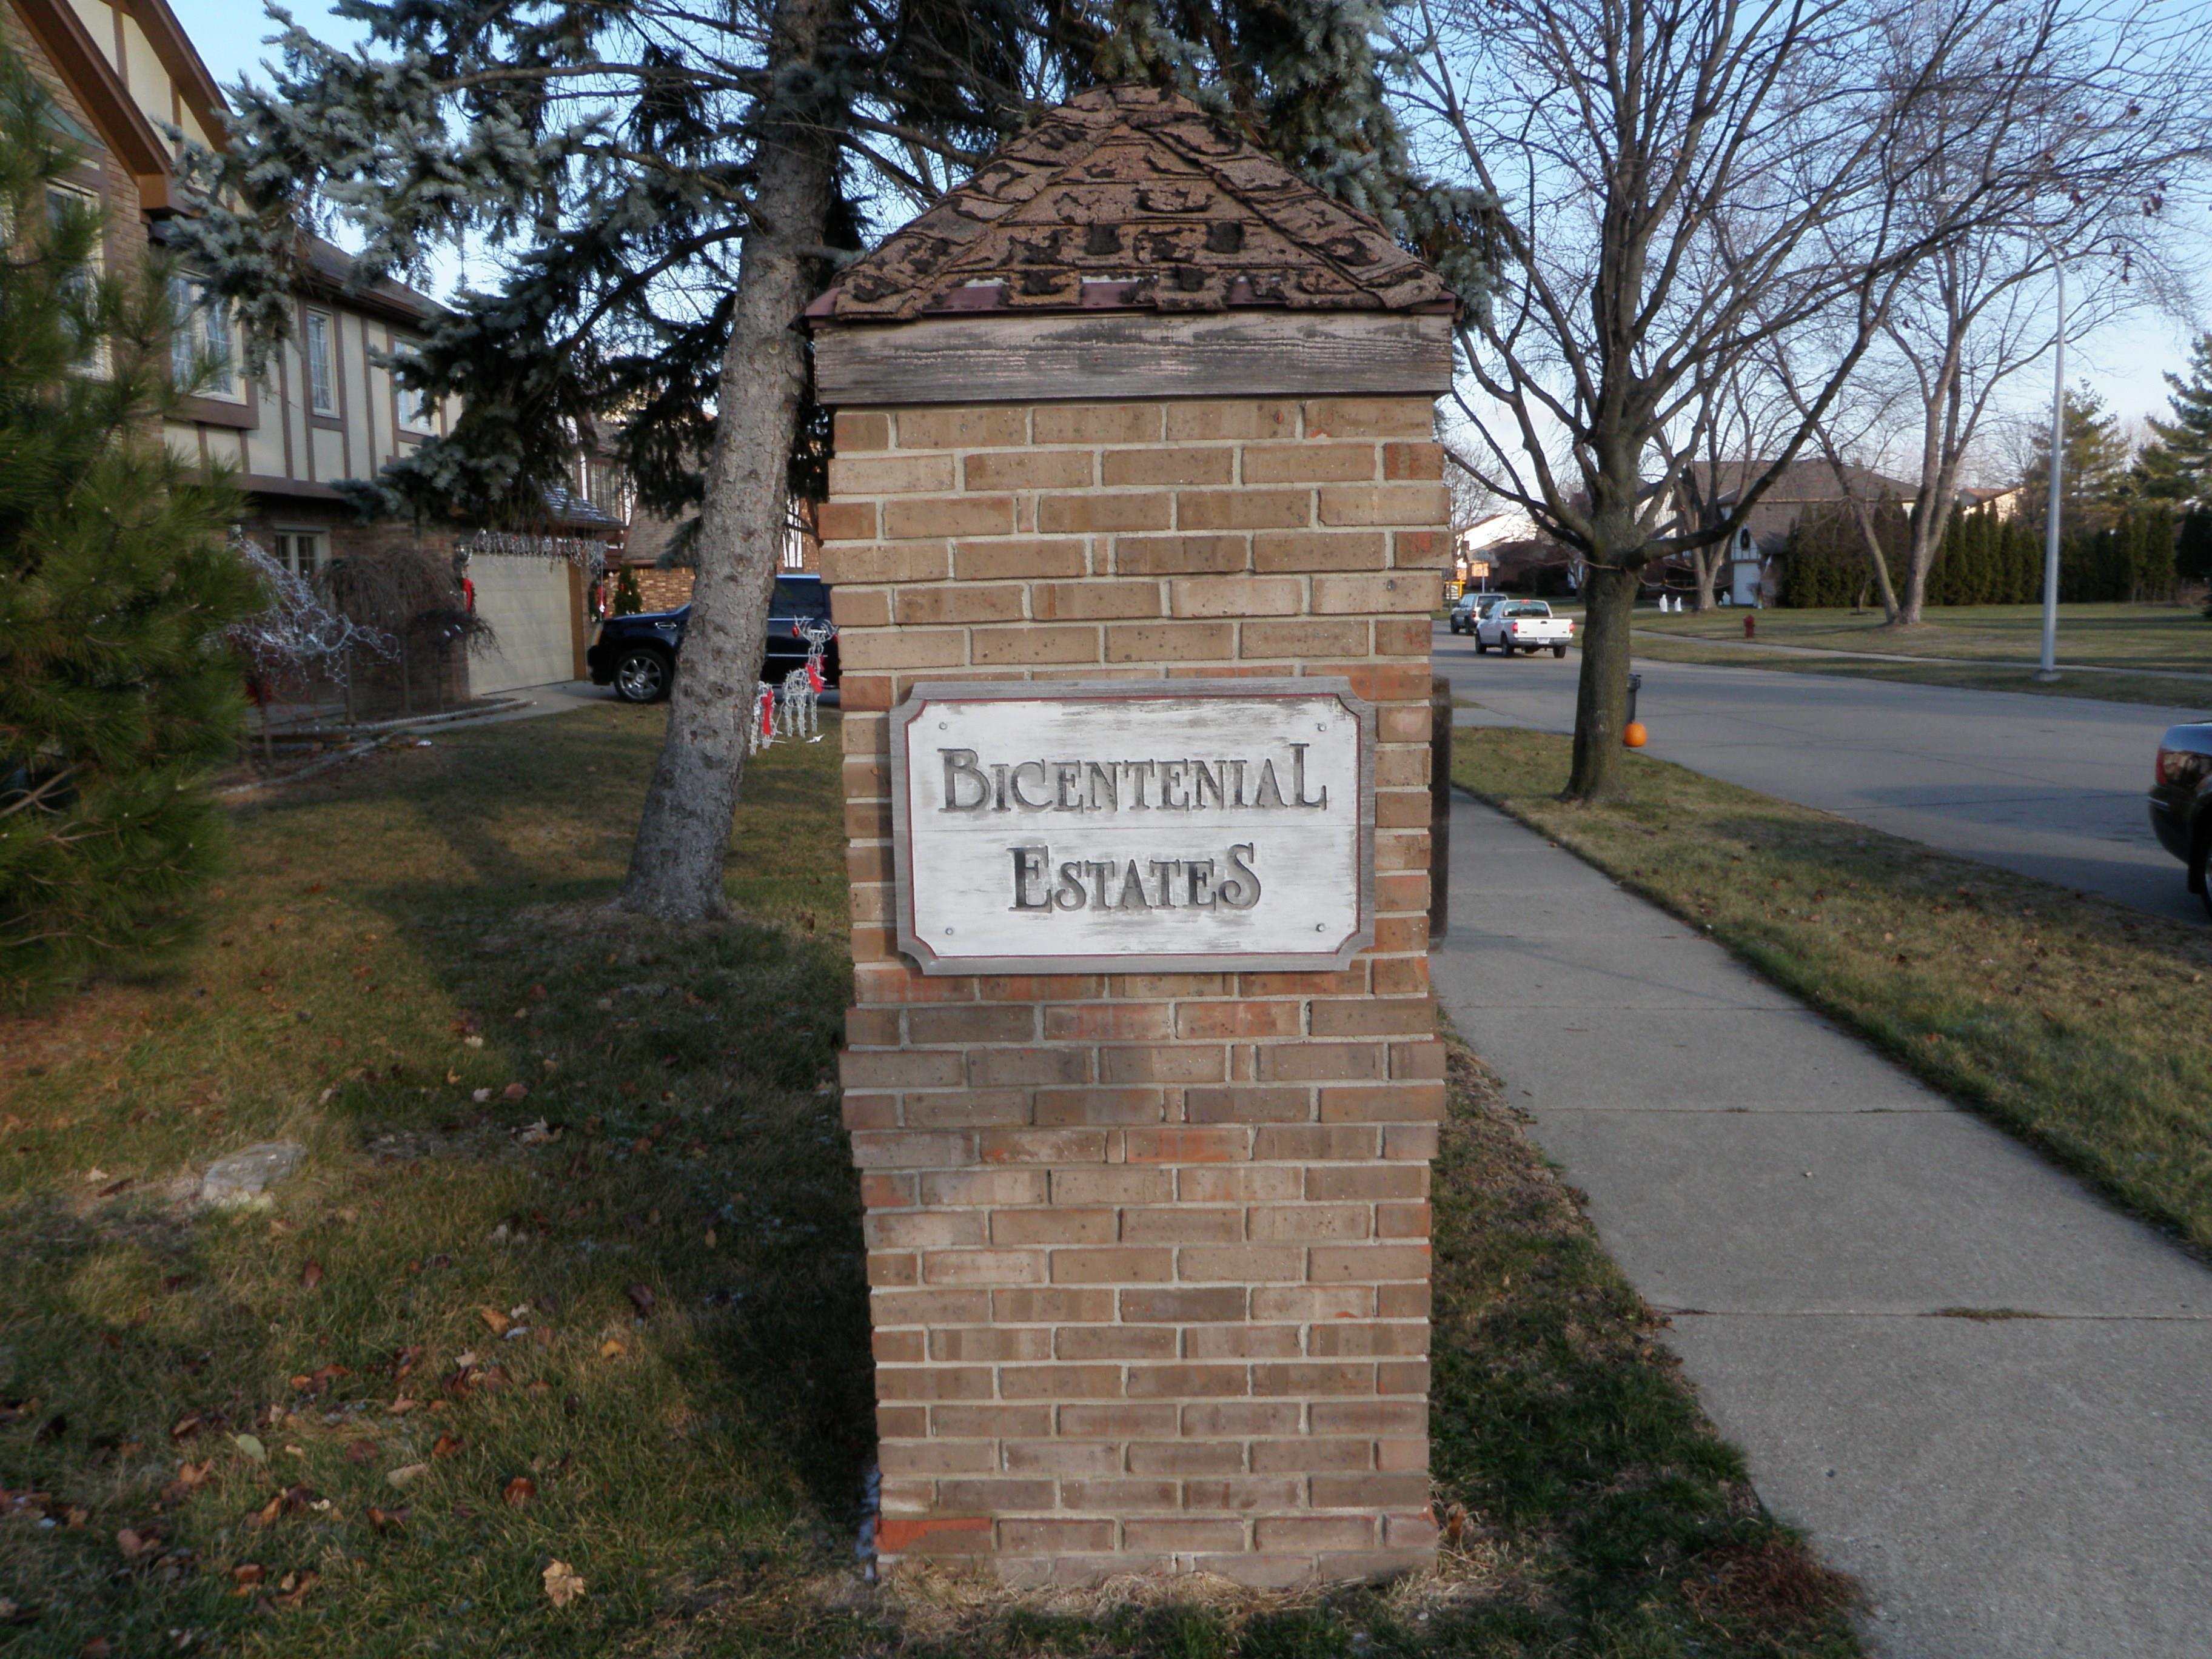 Bicentennial Estates Livonia Michigan Entrance